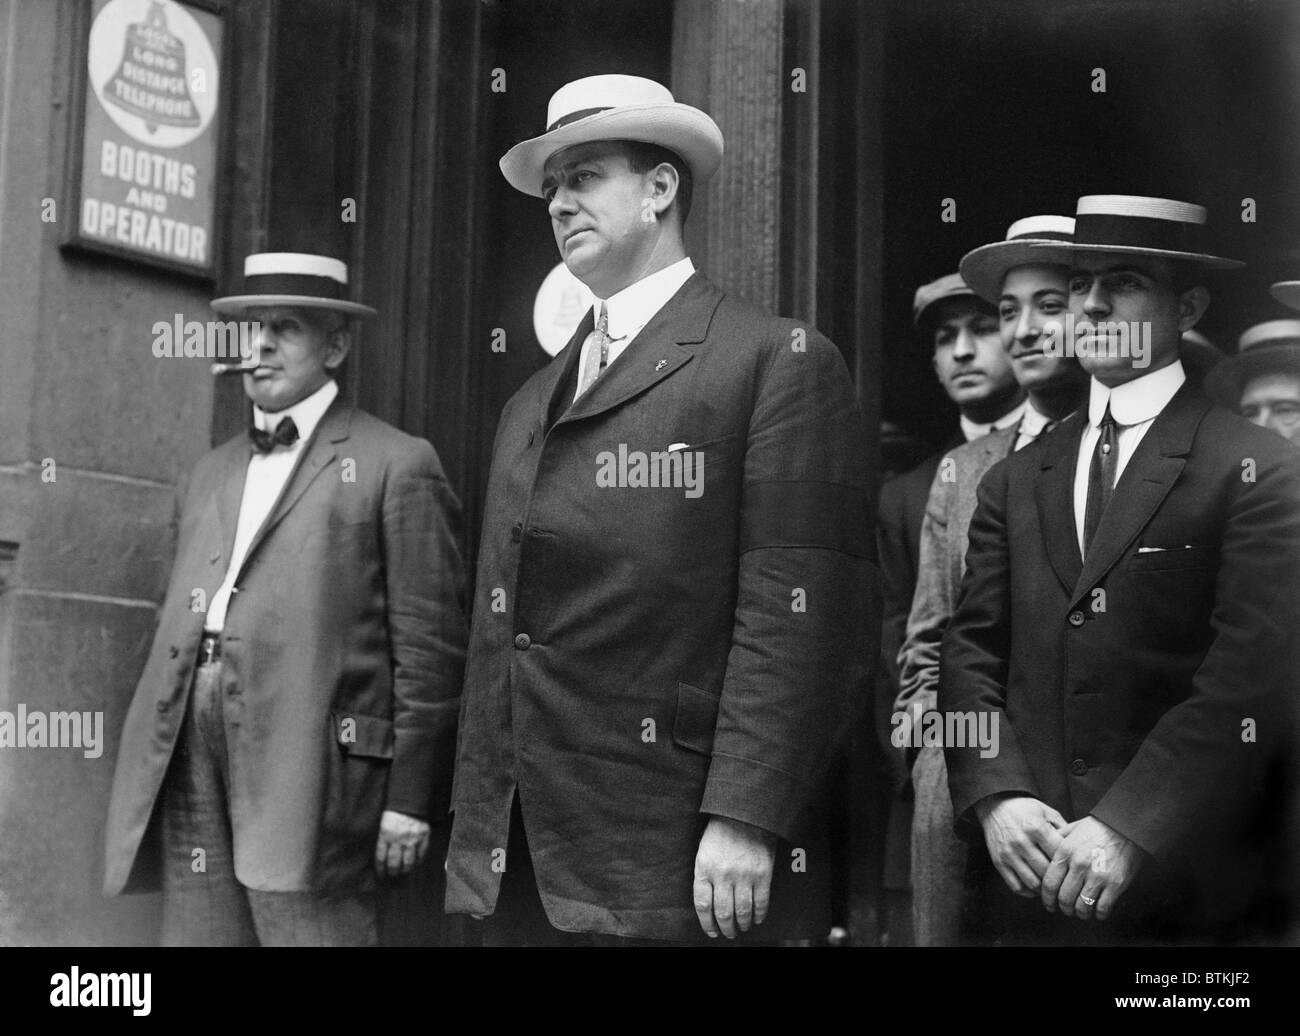 Corrupt New York City police Lieutenant Charles Becker (center) was executed in 1915, in the Sing Sing Prison electric Stock Photo